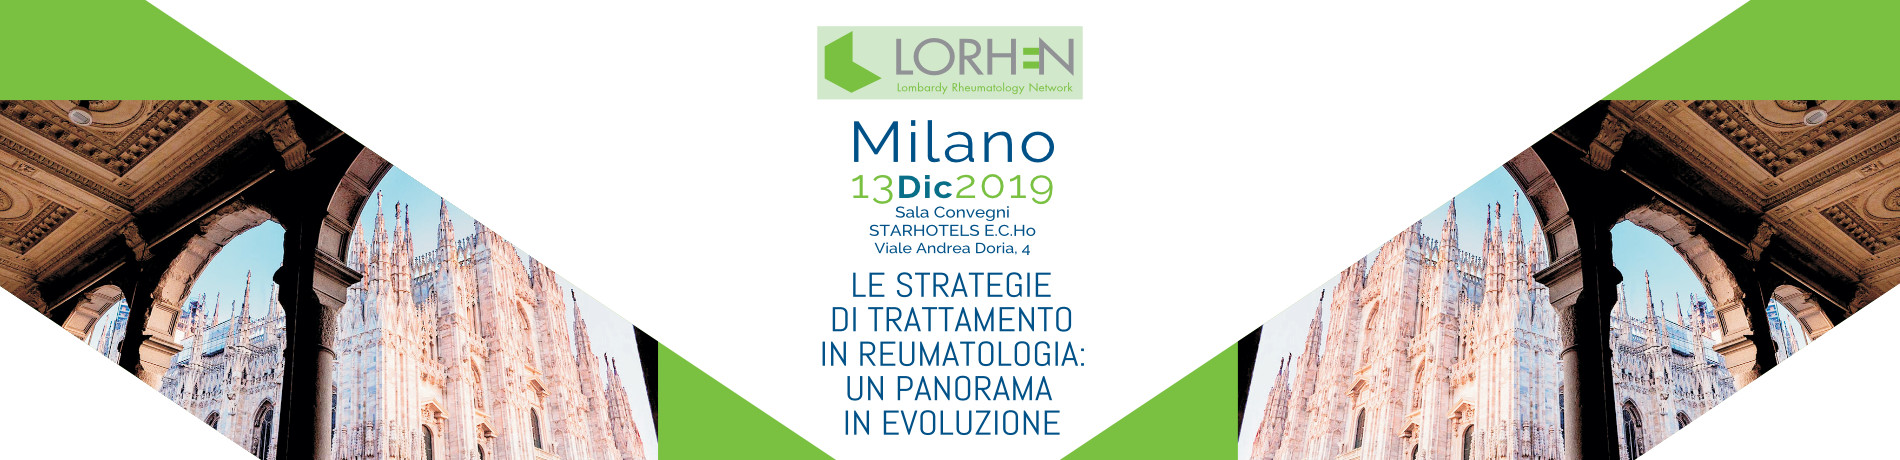 https://www.formedica.it/wp/wp-content/uploads/2019/11/2019_12_13_Le-strategie-di-trattamento-in-reumatologia.jpg